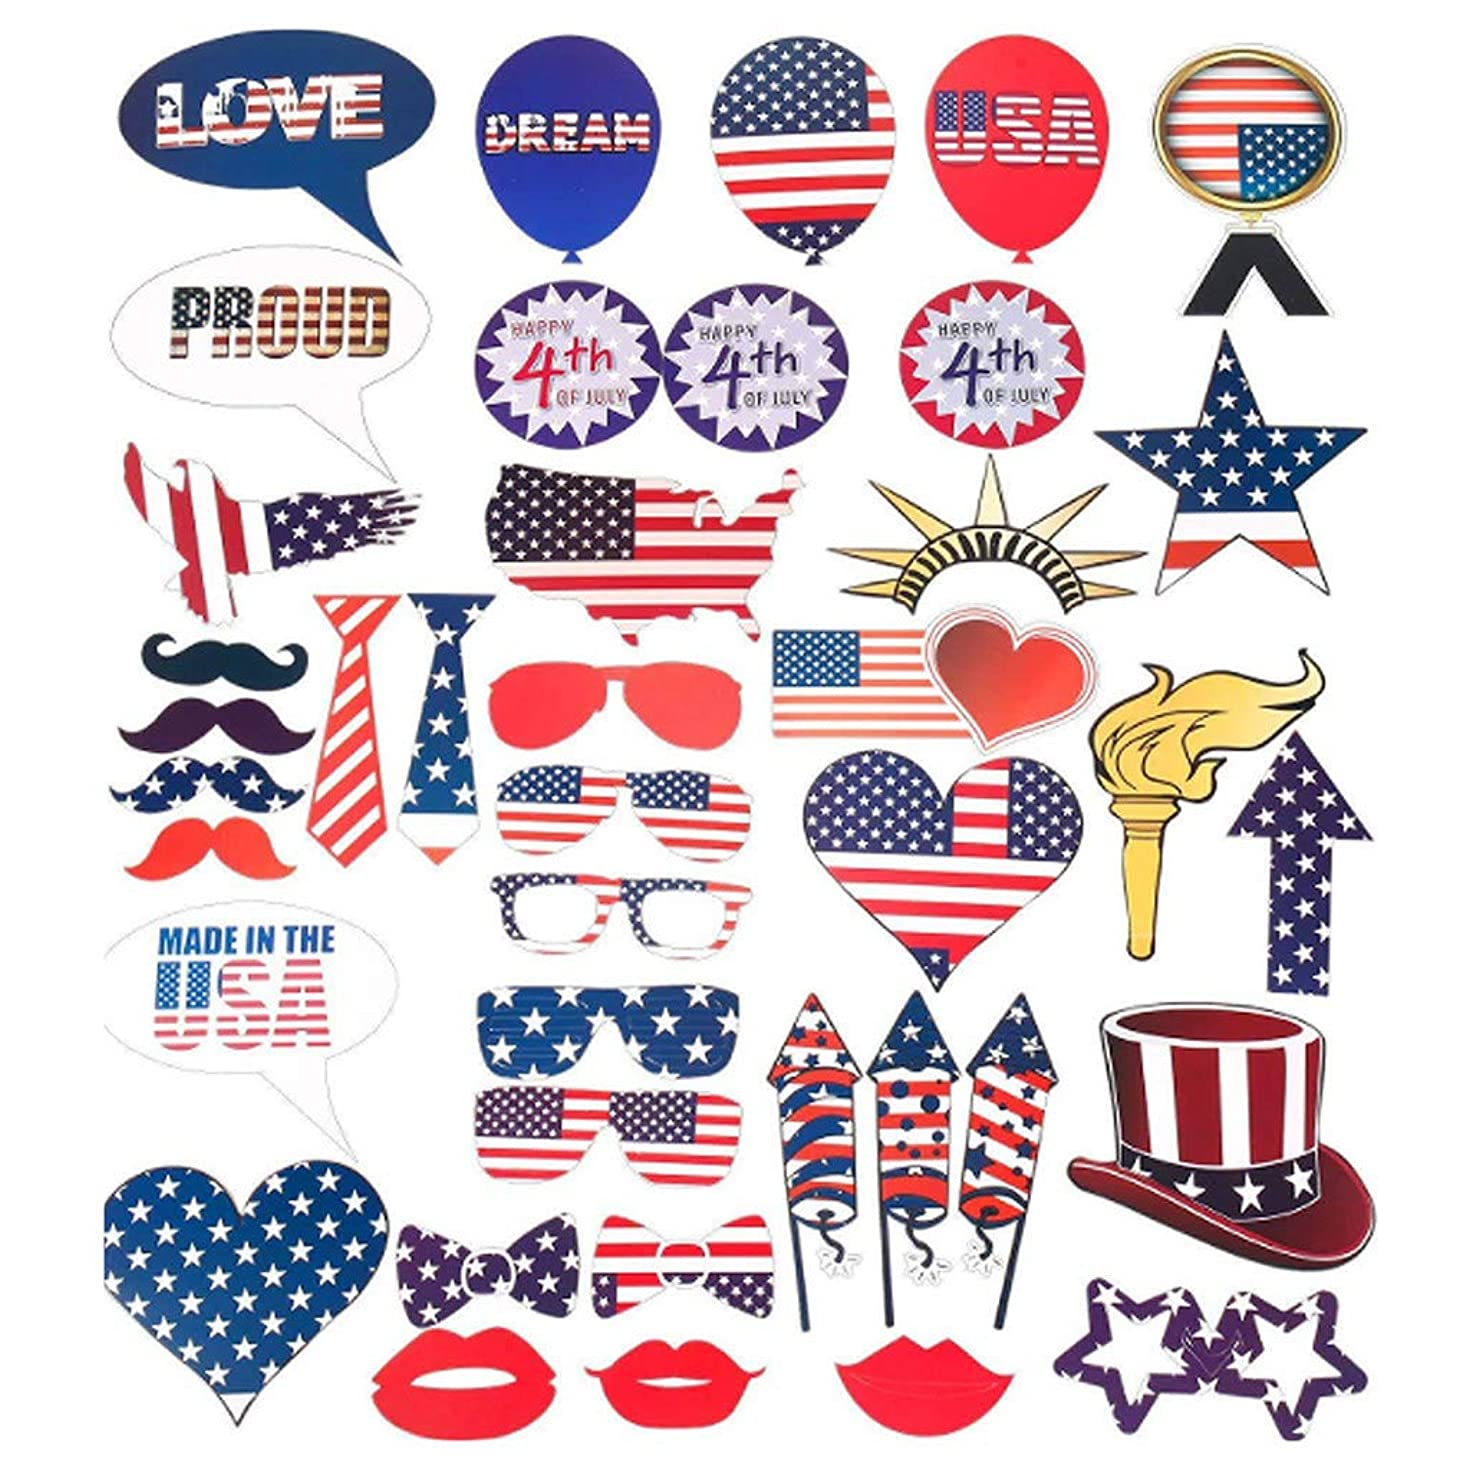 ??Ywoow?? Paper Props, July 4th American Independence Day 40 Pieces Home Party Decoration Photo Prop